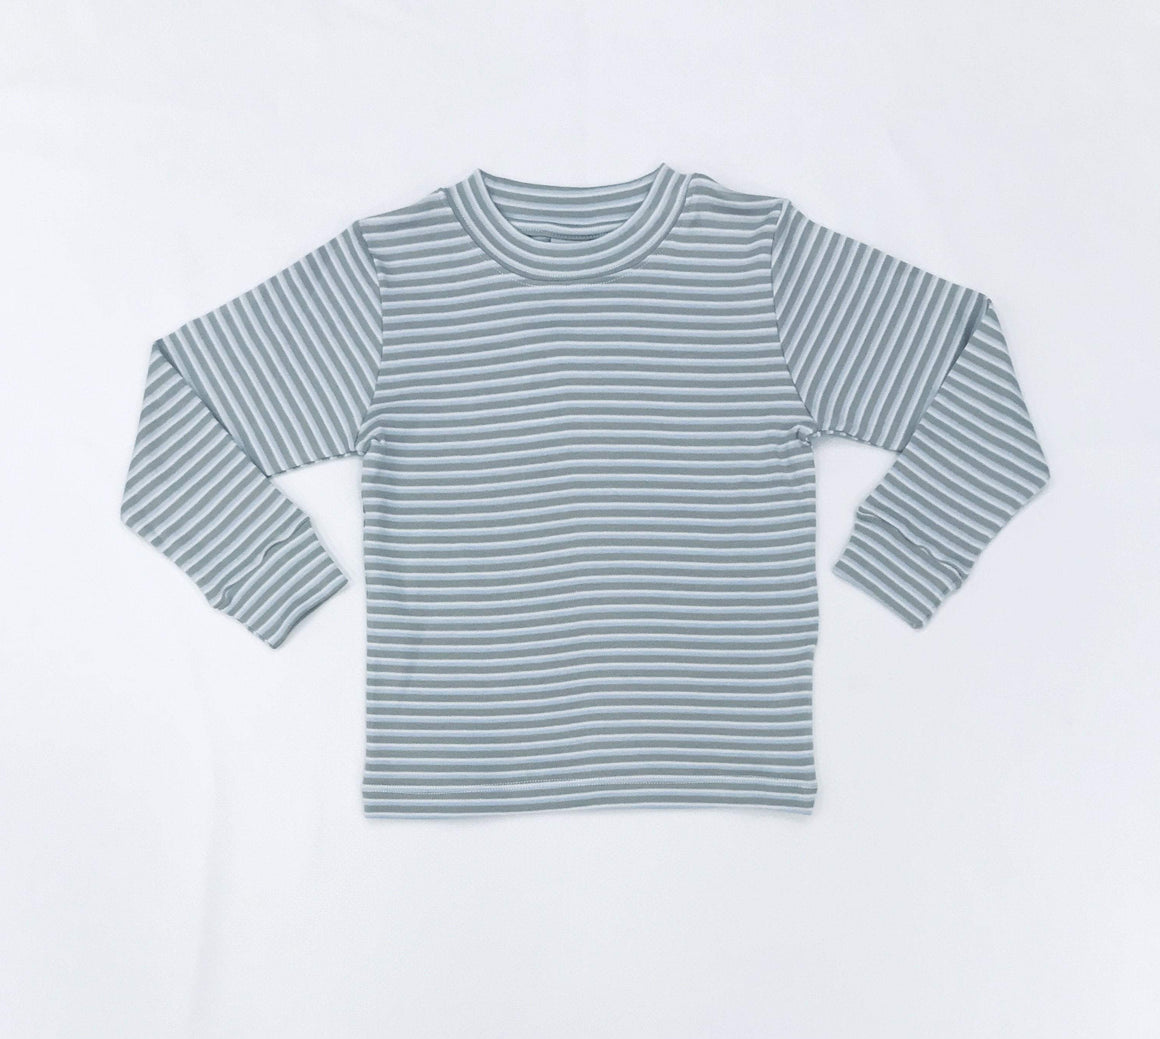 Squiggles by Charlie Boys Apparel Squiggles by Charlie Boys Blue and Grey Stripe Shirt